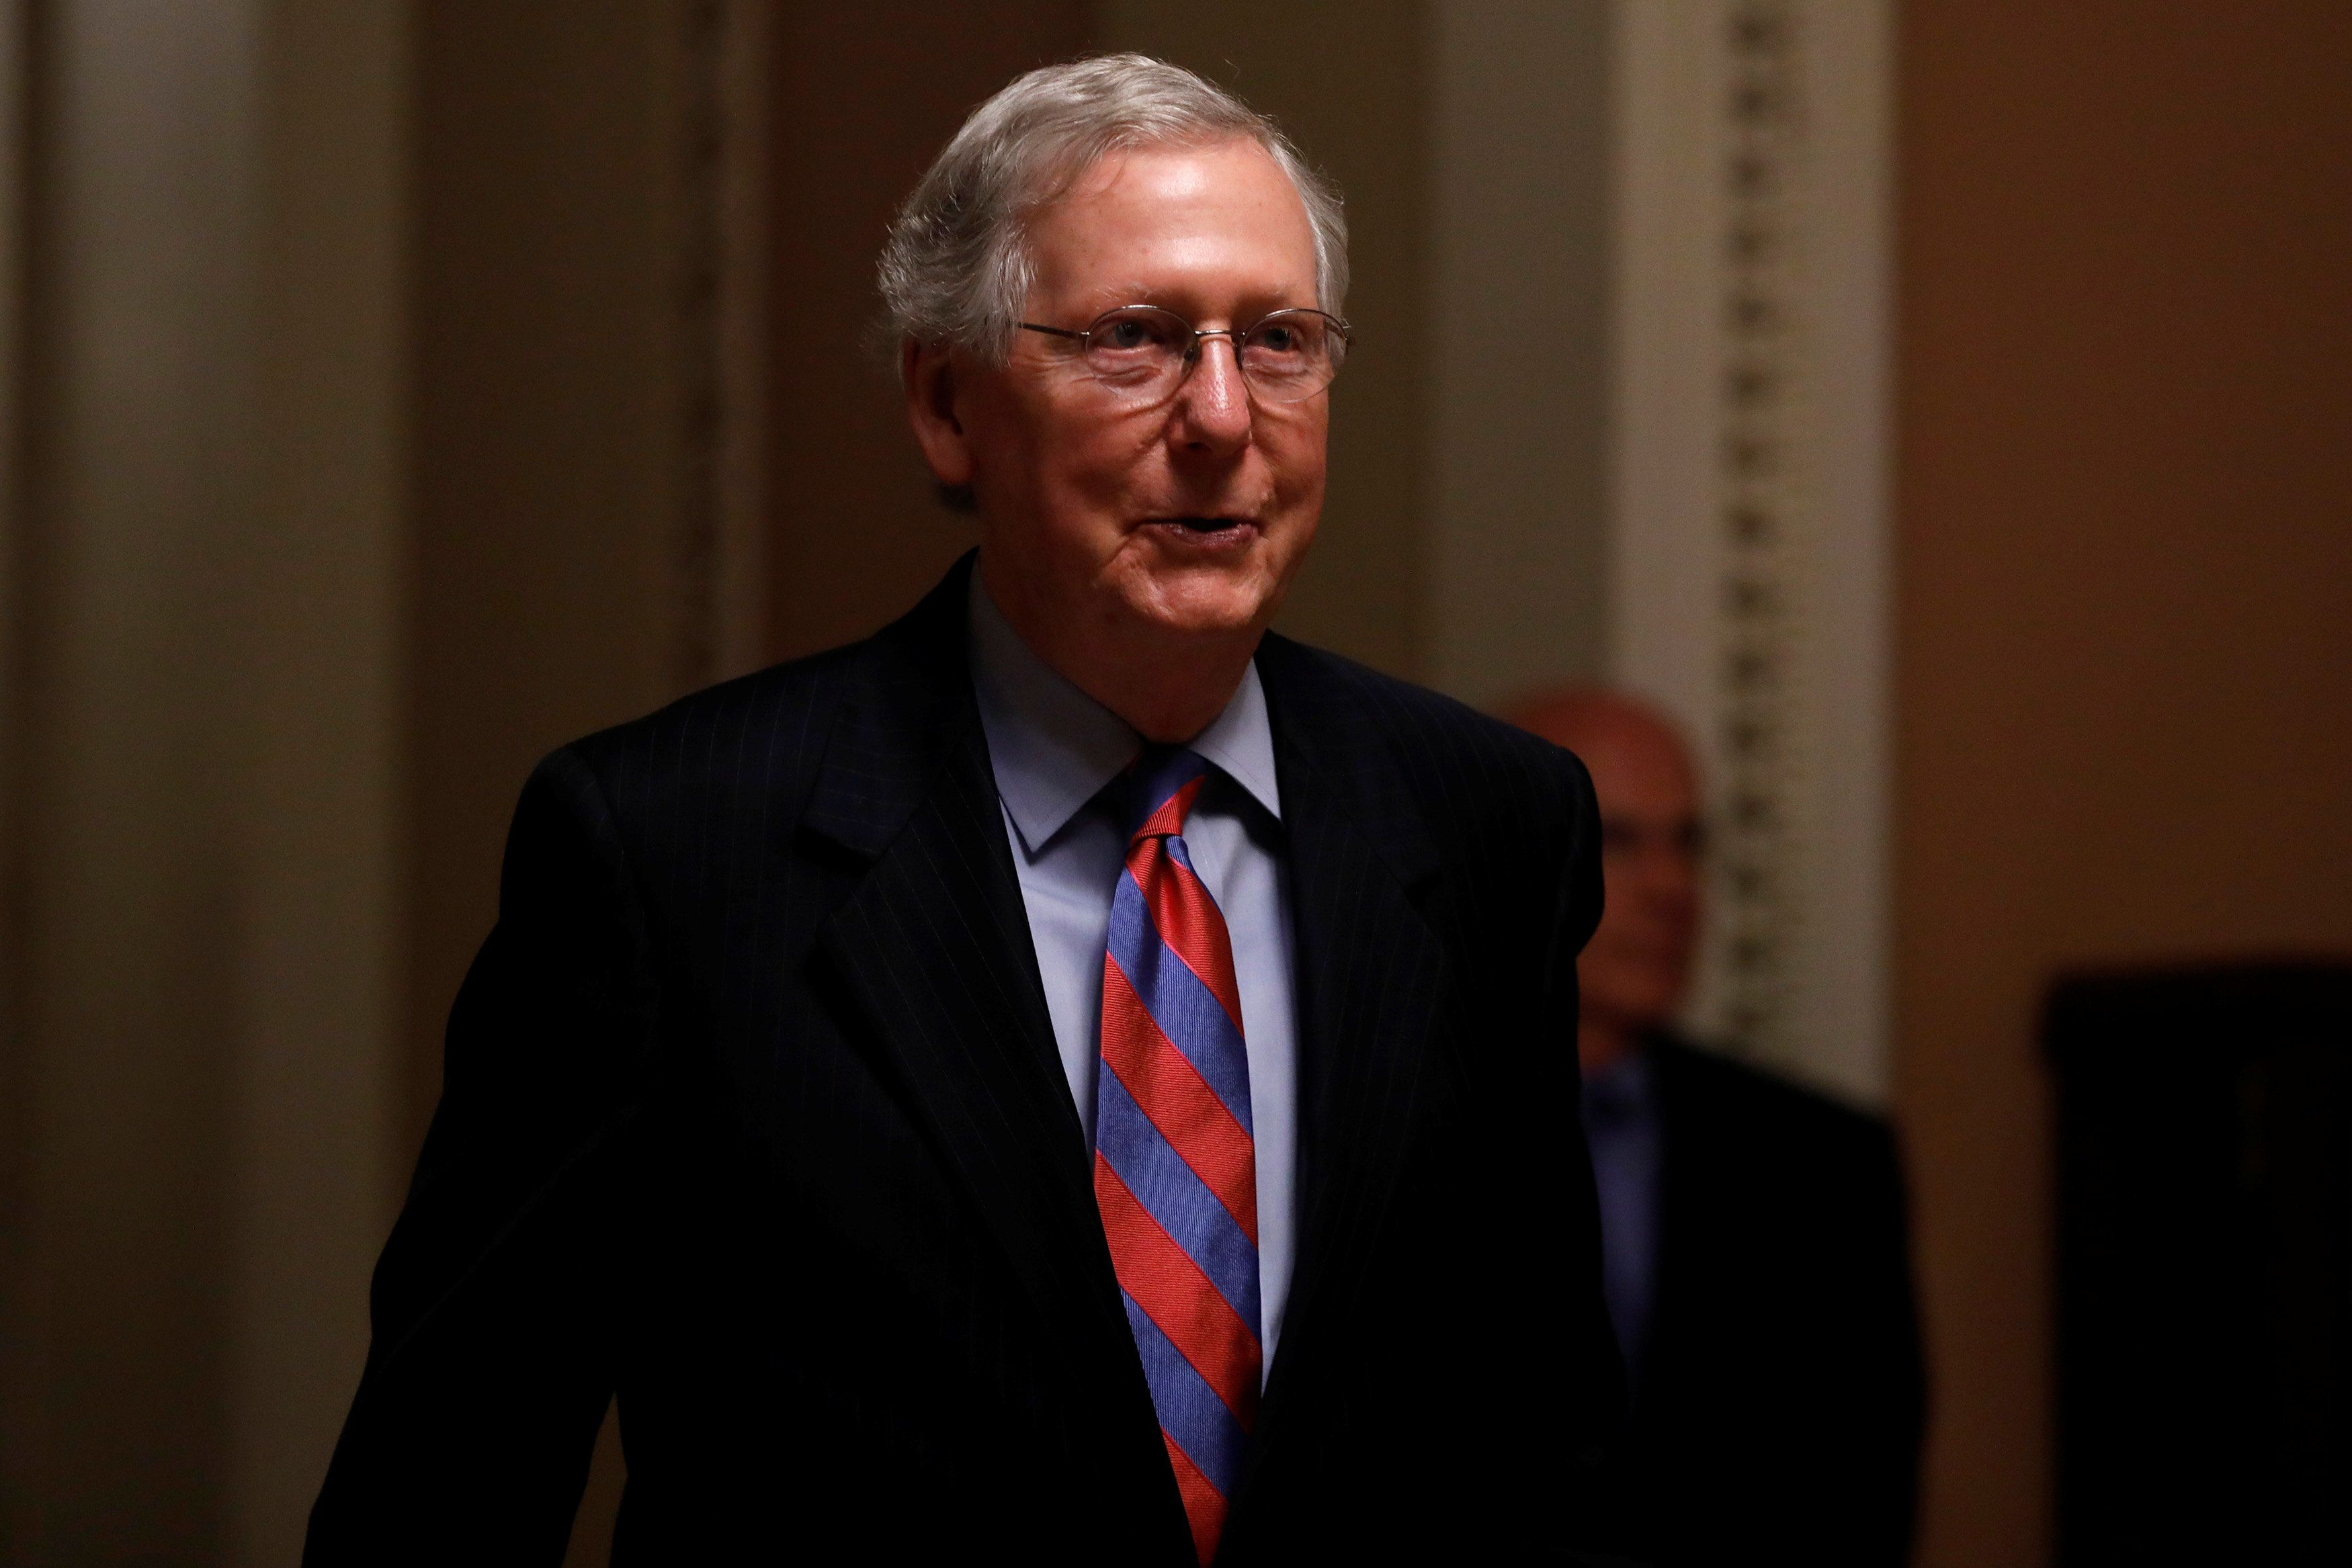 Senate Majority Leader Mitch McConnell walks to his office prior to an all night round of health care votes on Capitol Hill in Washington, U.S., July 27, 2017. REUTERS/Aaron P. Bernstein